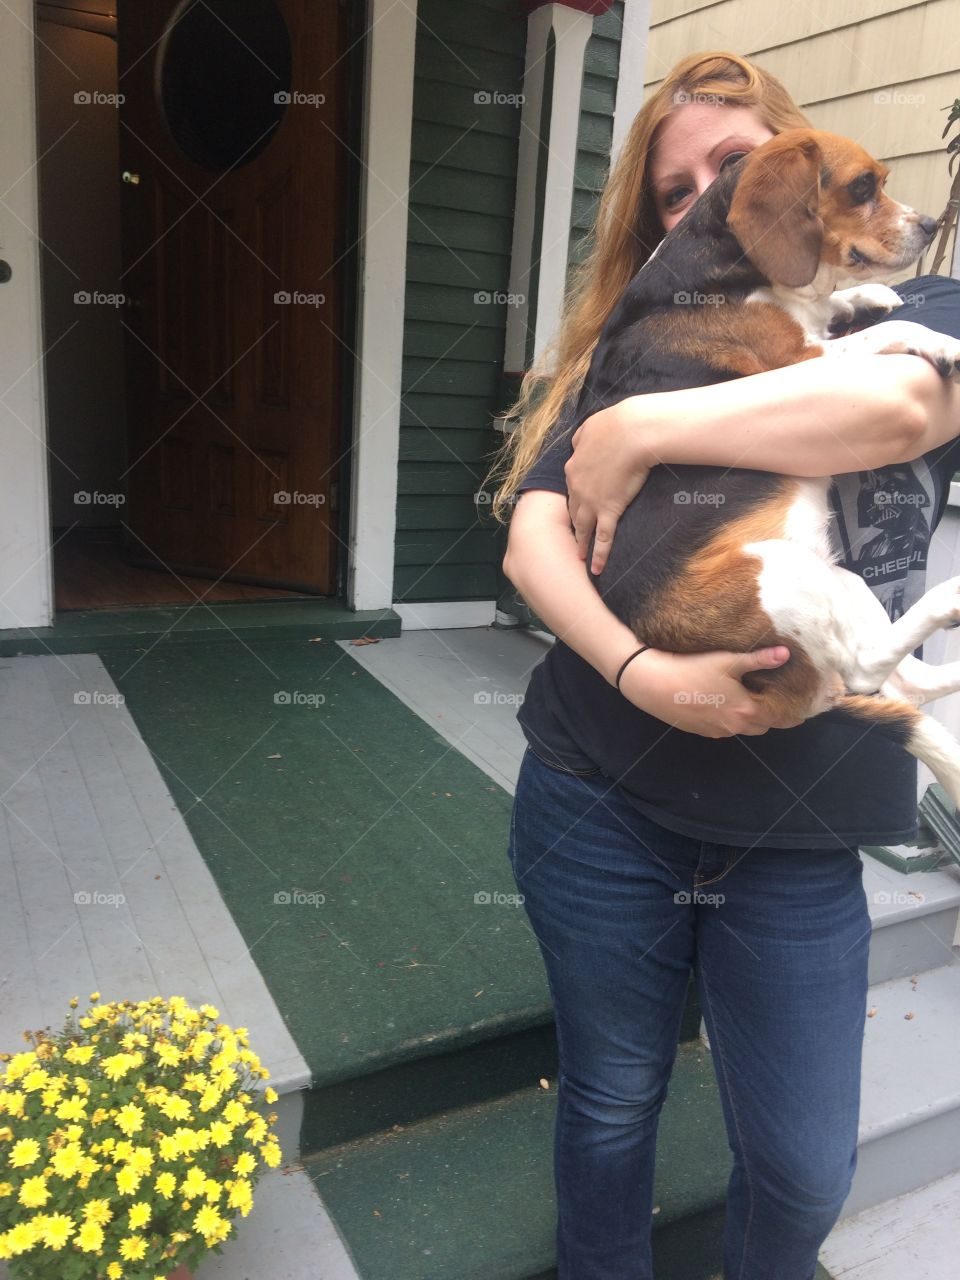 Cute and happy beagle dog being held by woman on a porch.